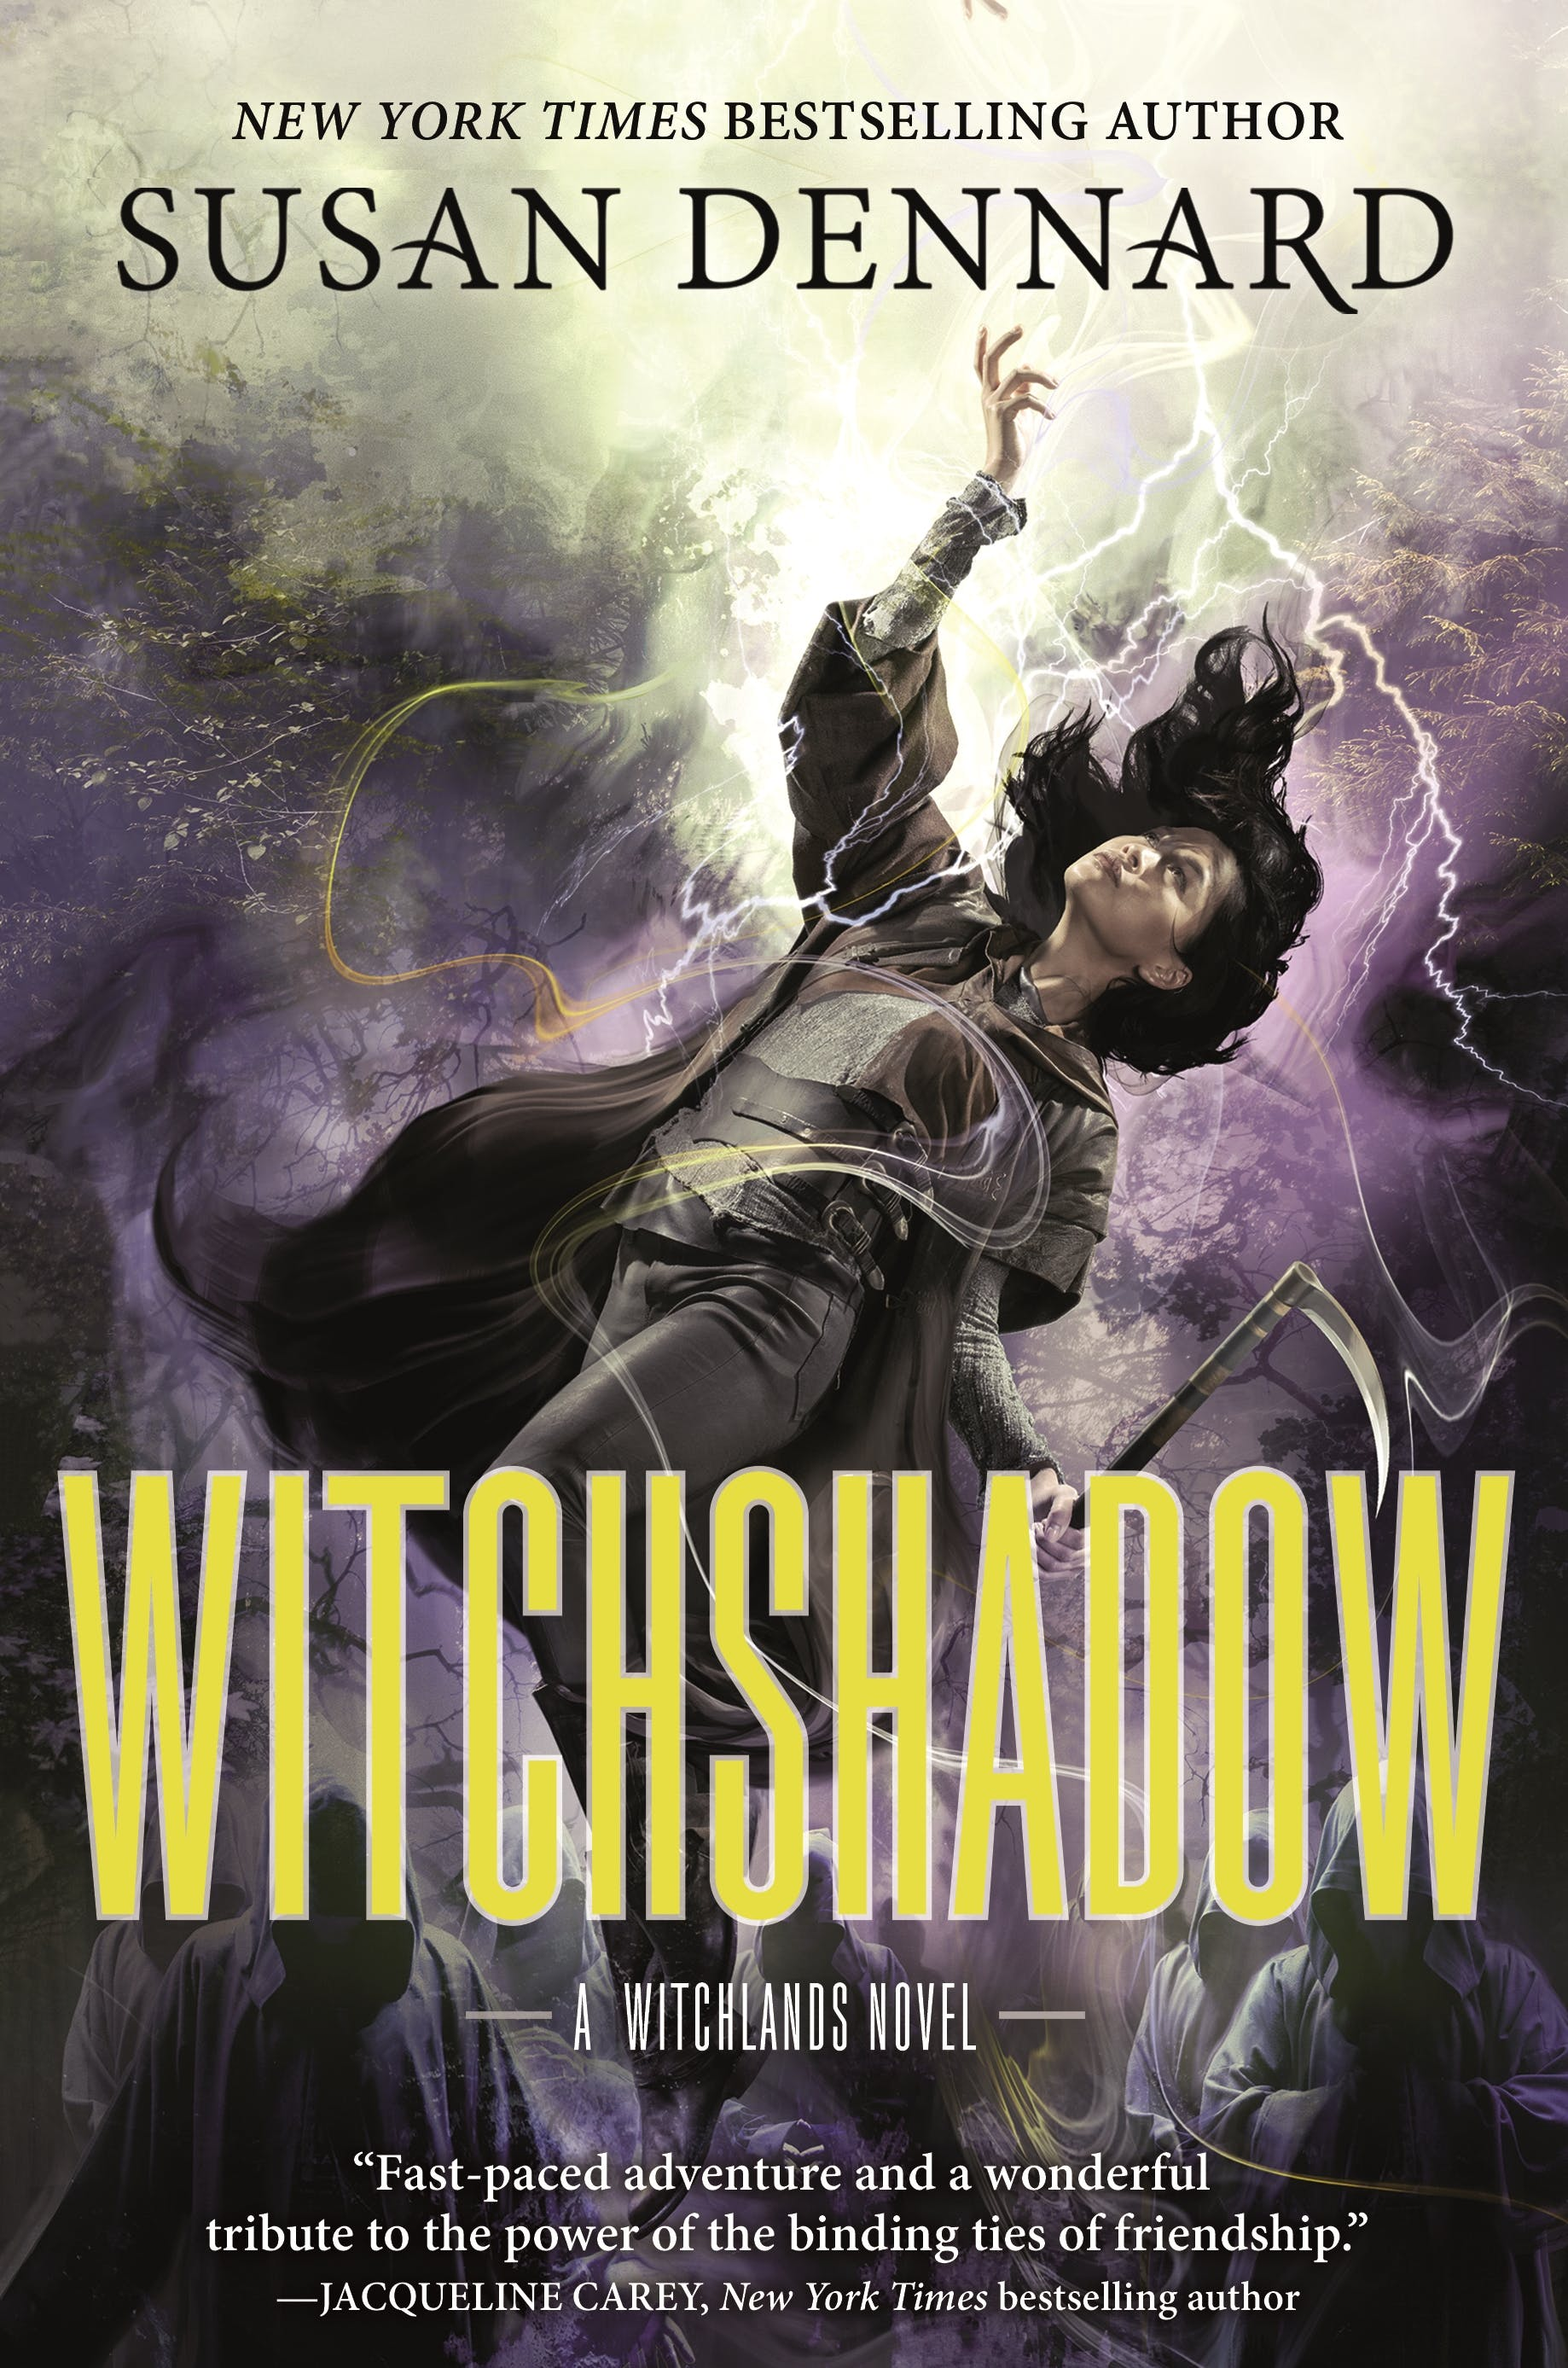 Image of Witchshadow